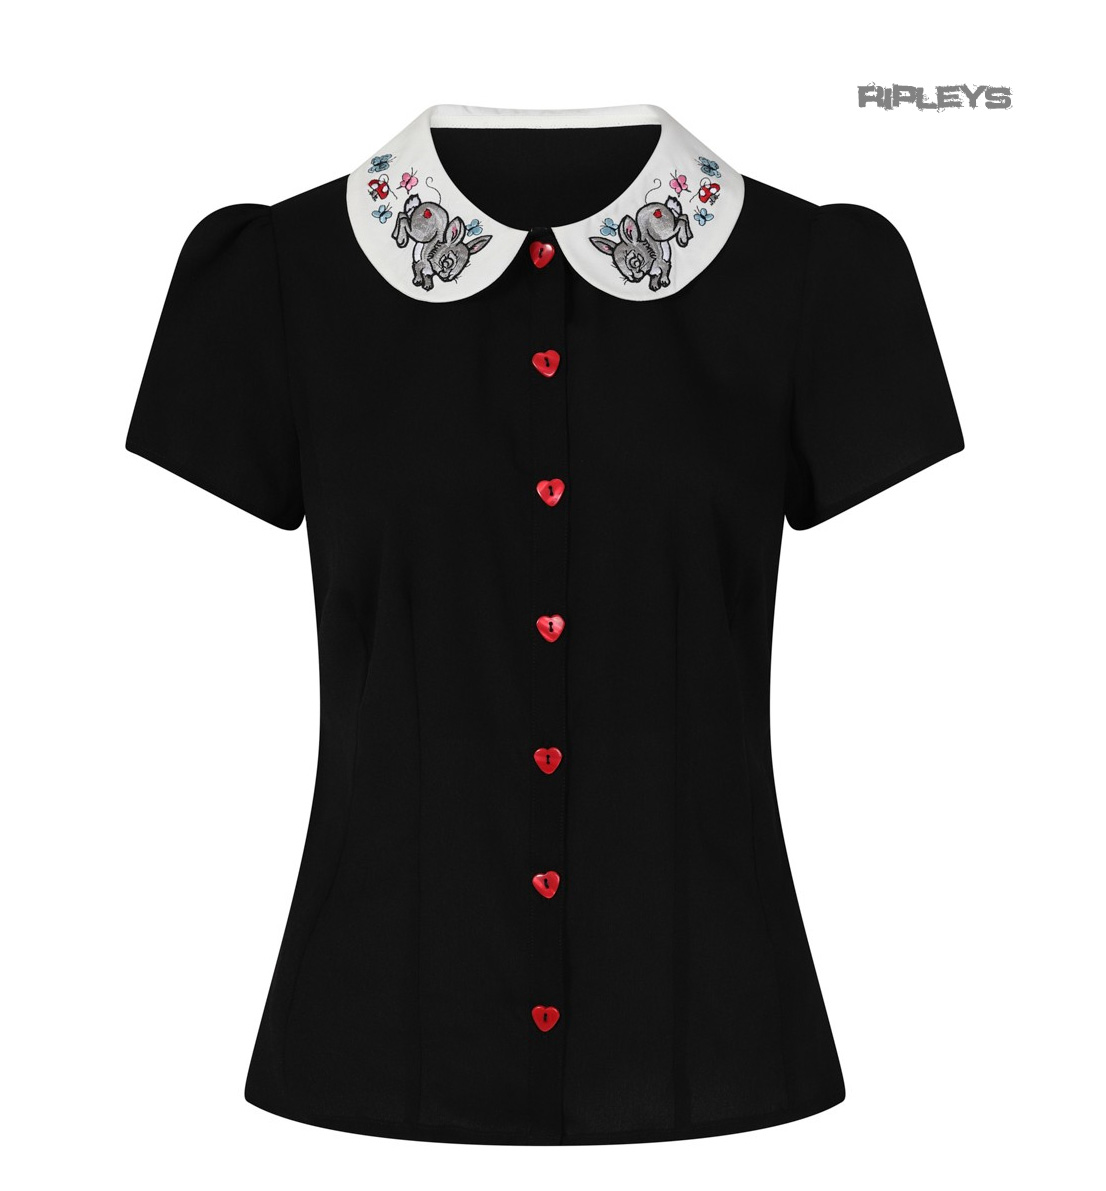 Hell-Bunny-Shirt-Top-Black-Blouse-THUMPER-Easter-Rabbit-Flowers-All-Sizes thumbnail 12